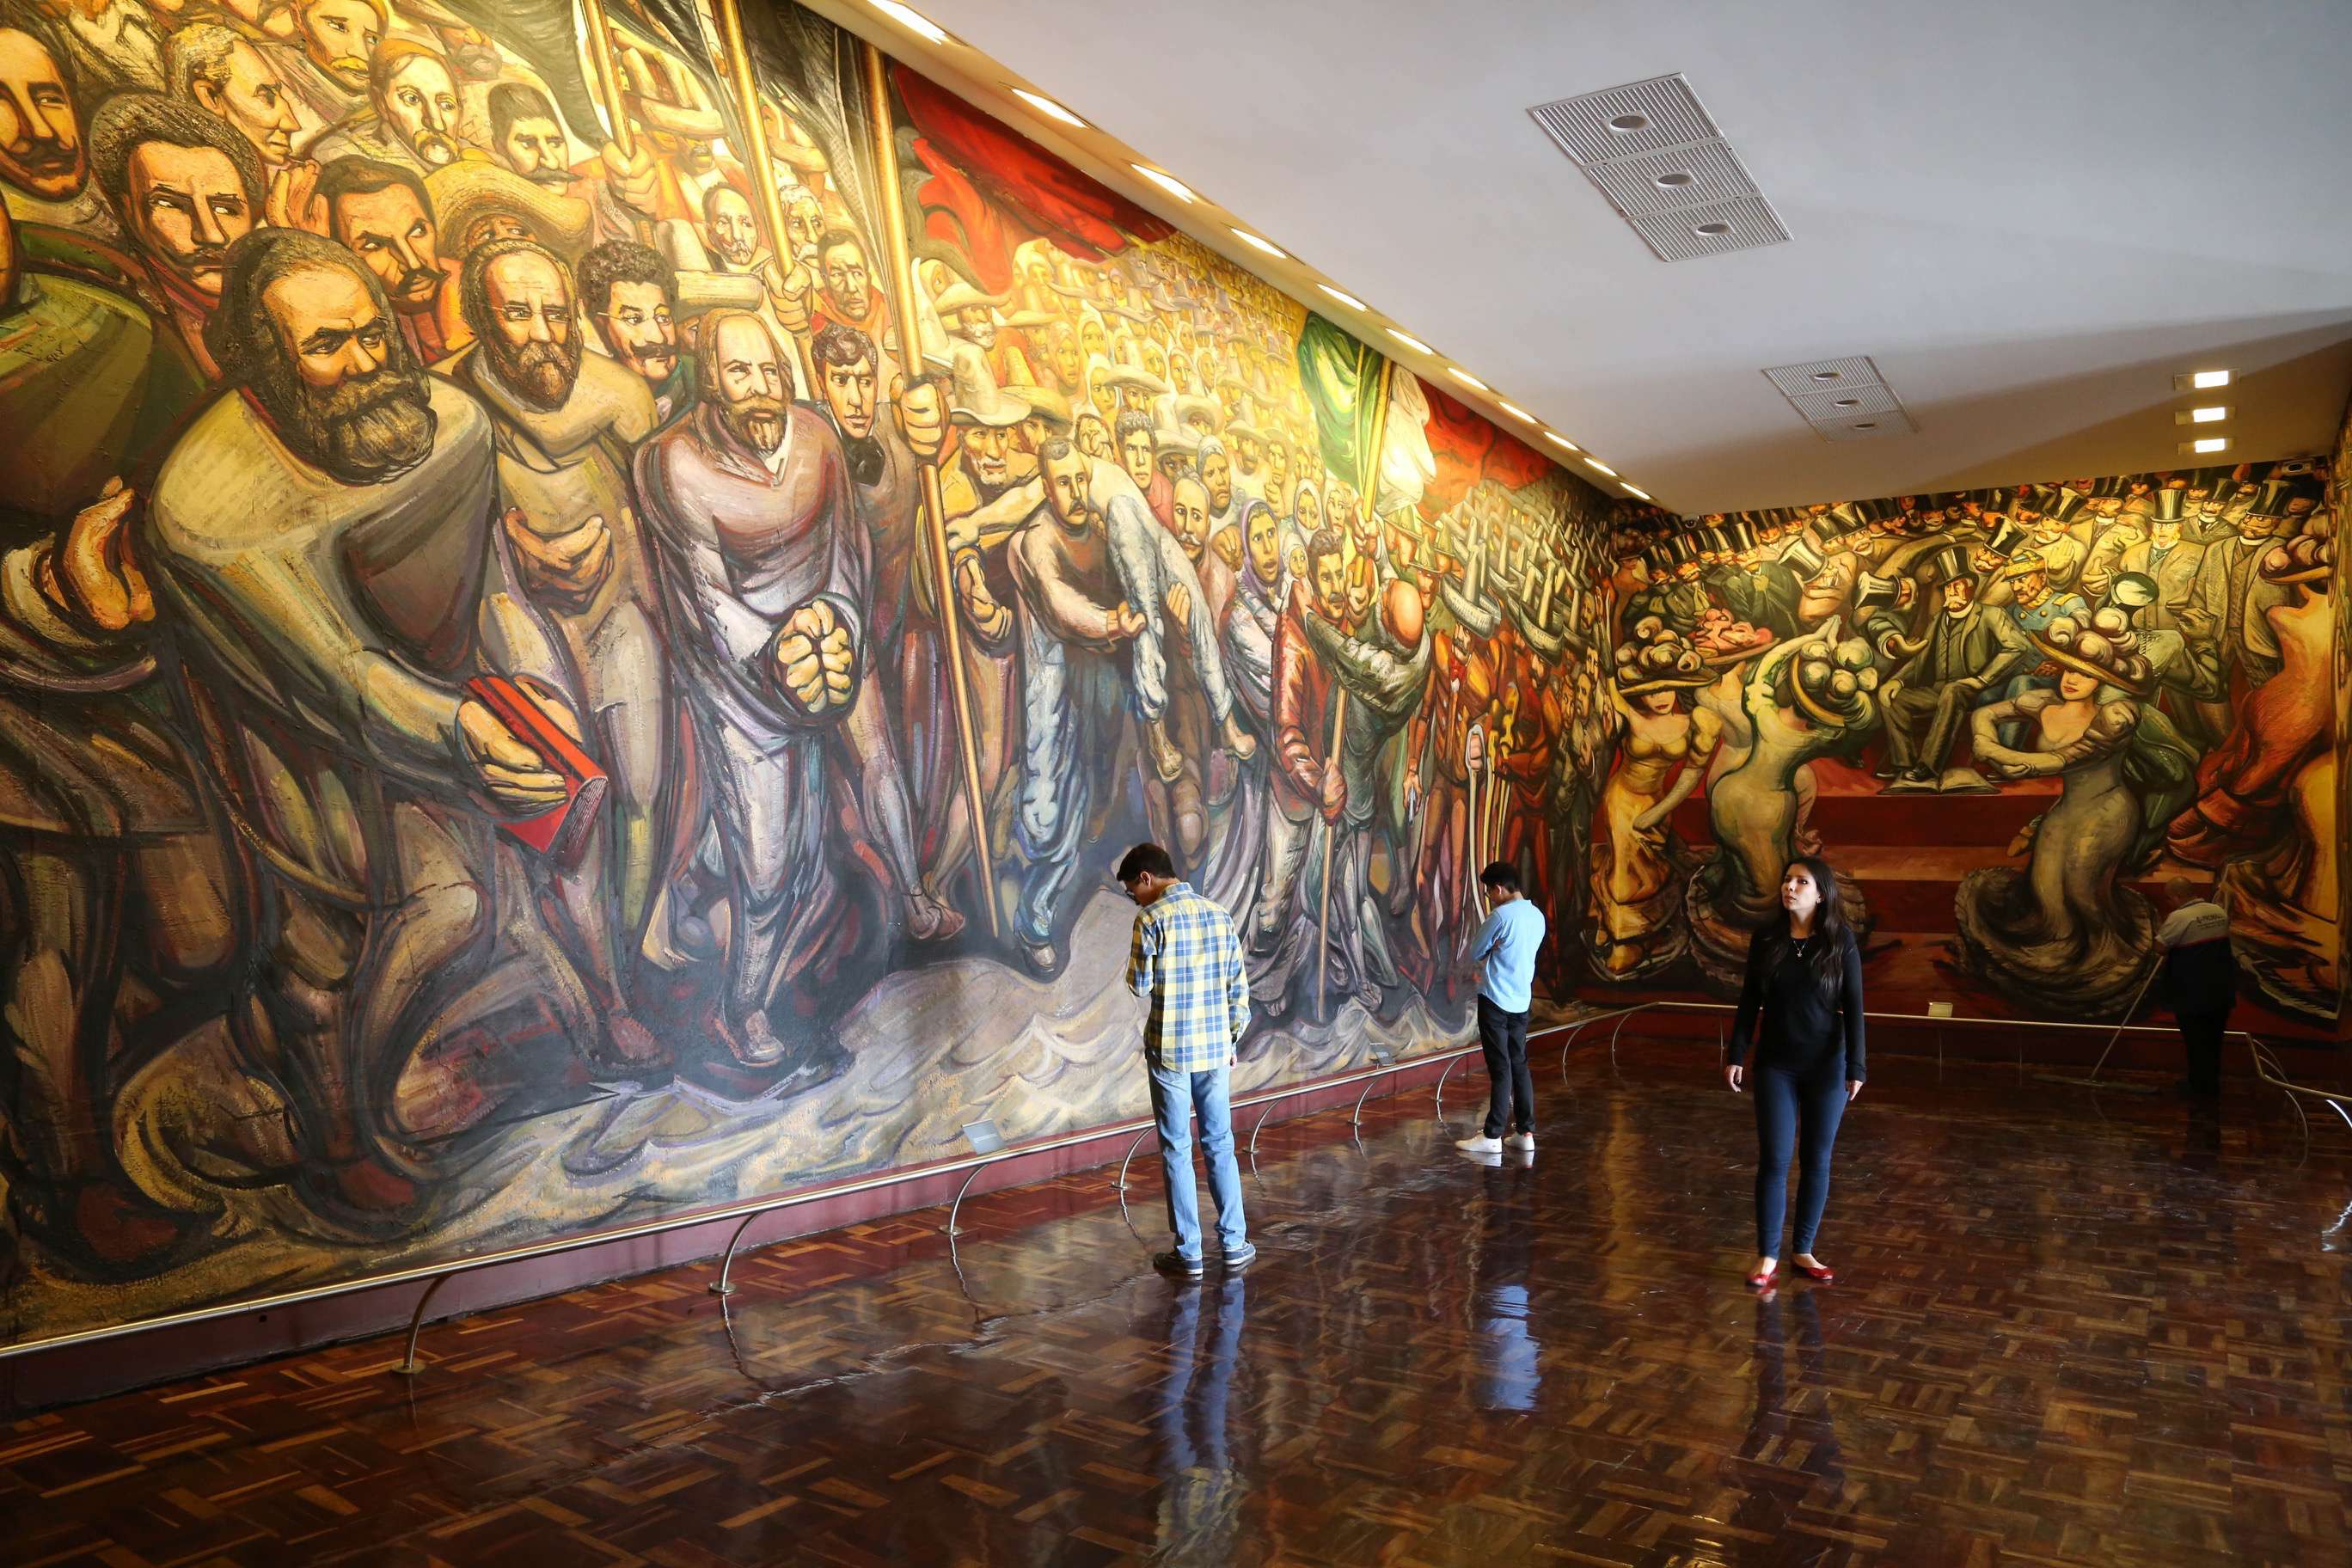 This giant mural at Chapultepec Castle tells of triumph overcoming struggle.